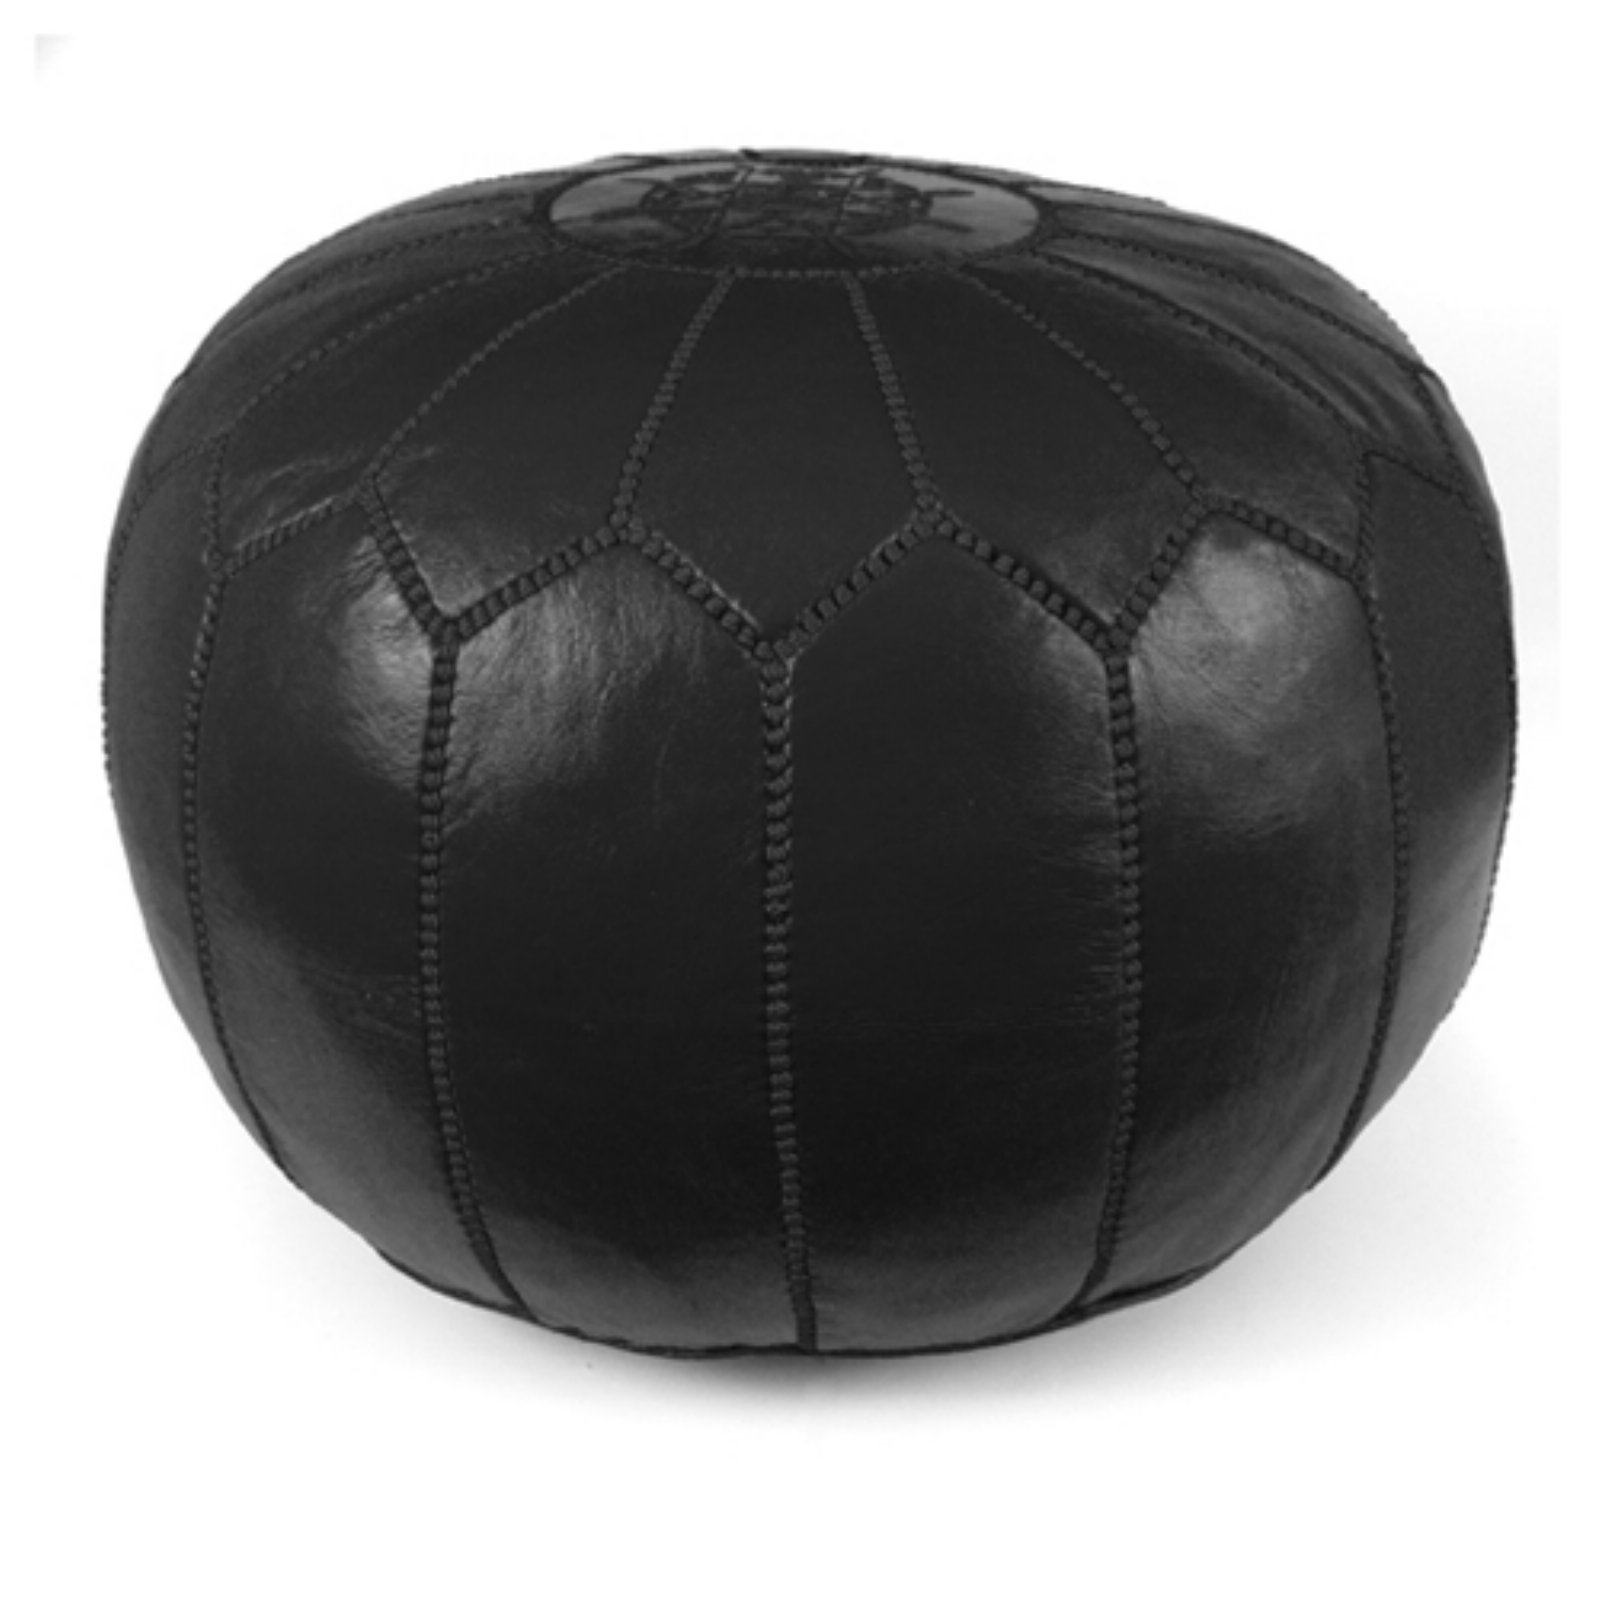 Ikram Design Round Moroccan Leather Pouf